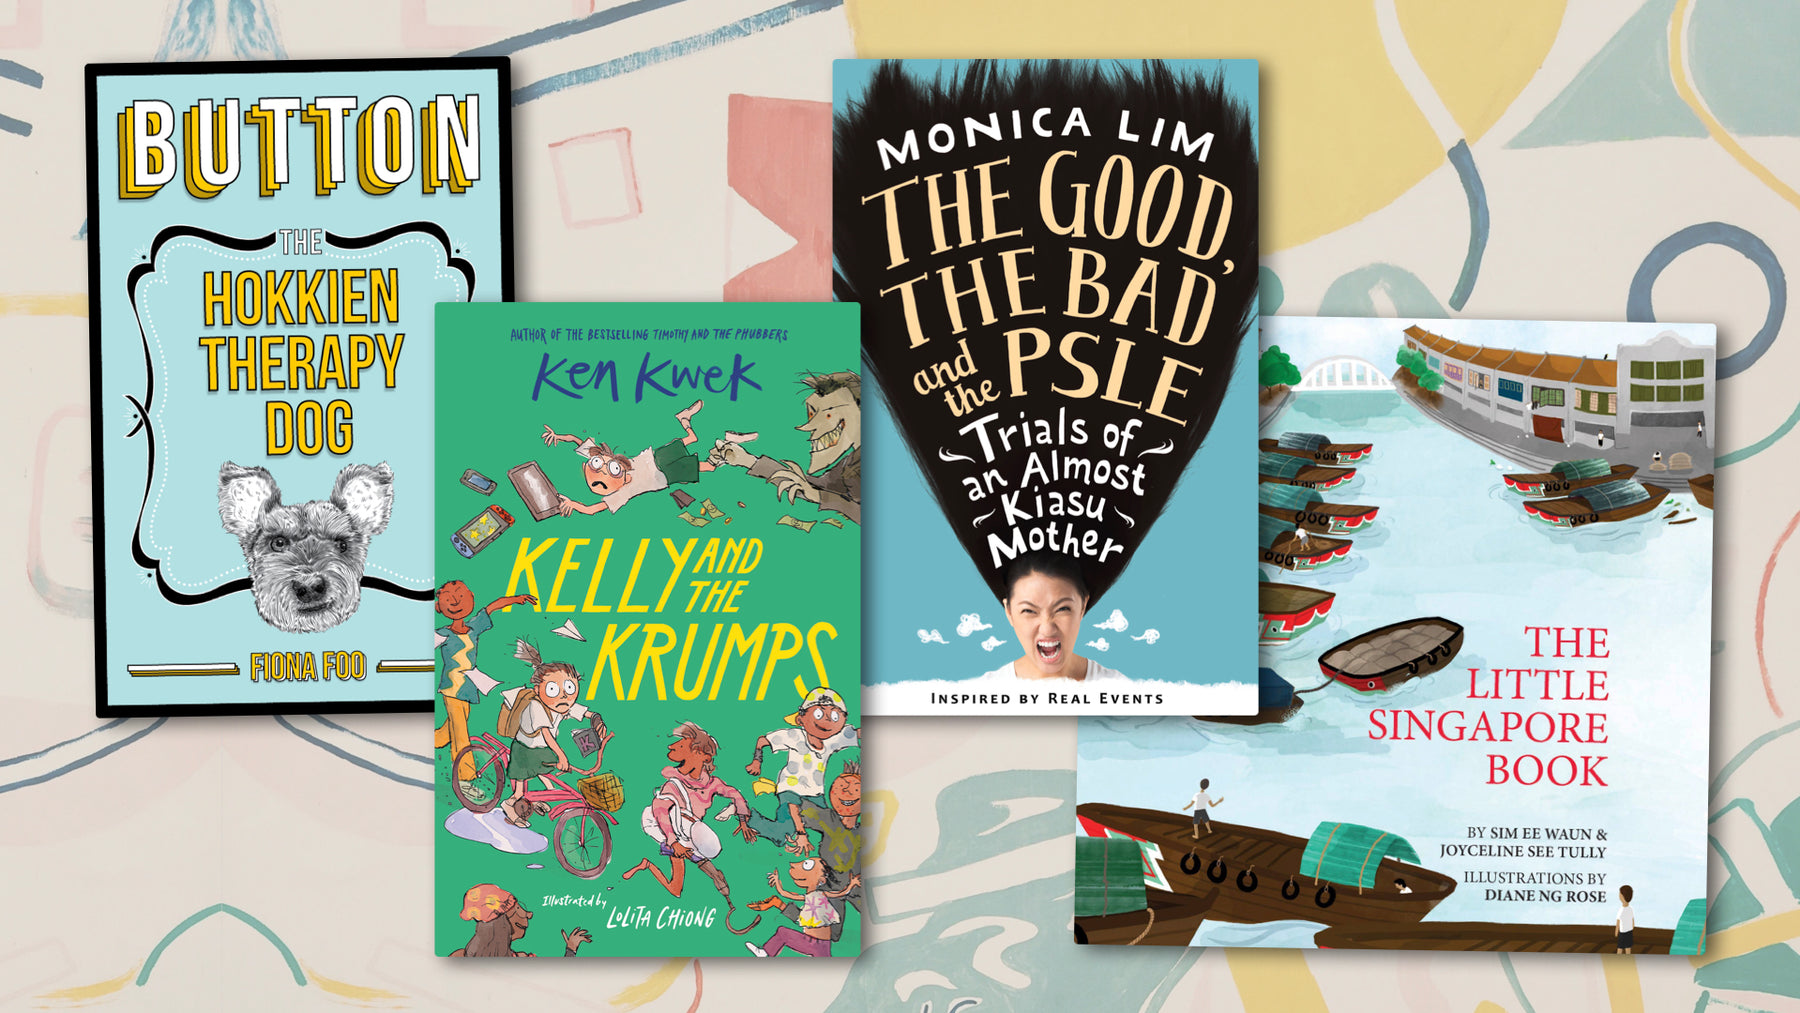 Recommended Reads: Great books for the family